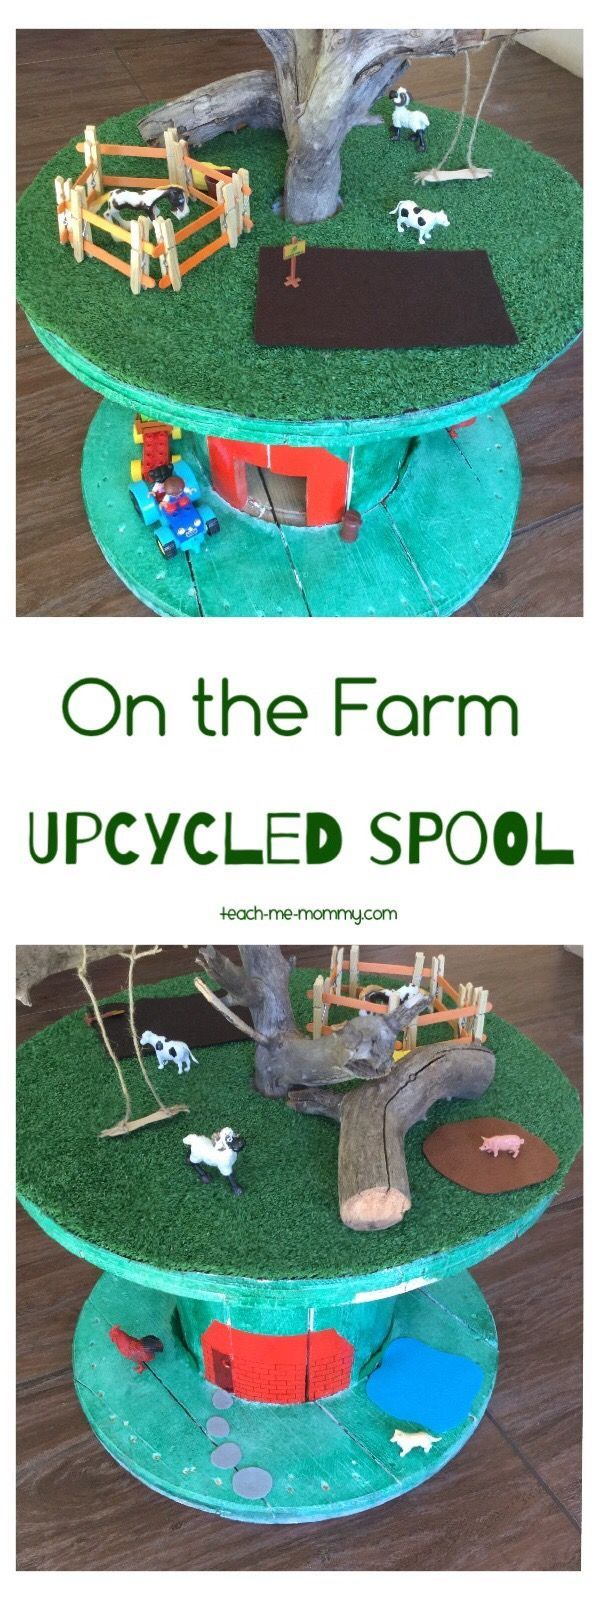 On the Farm Upcycled Spool Another great upcycled spool idea: On the Farm Small World! Your kids will have hours of fun!